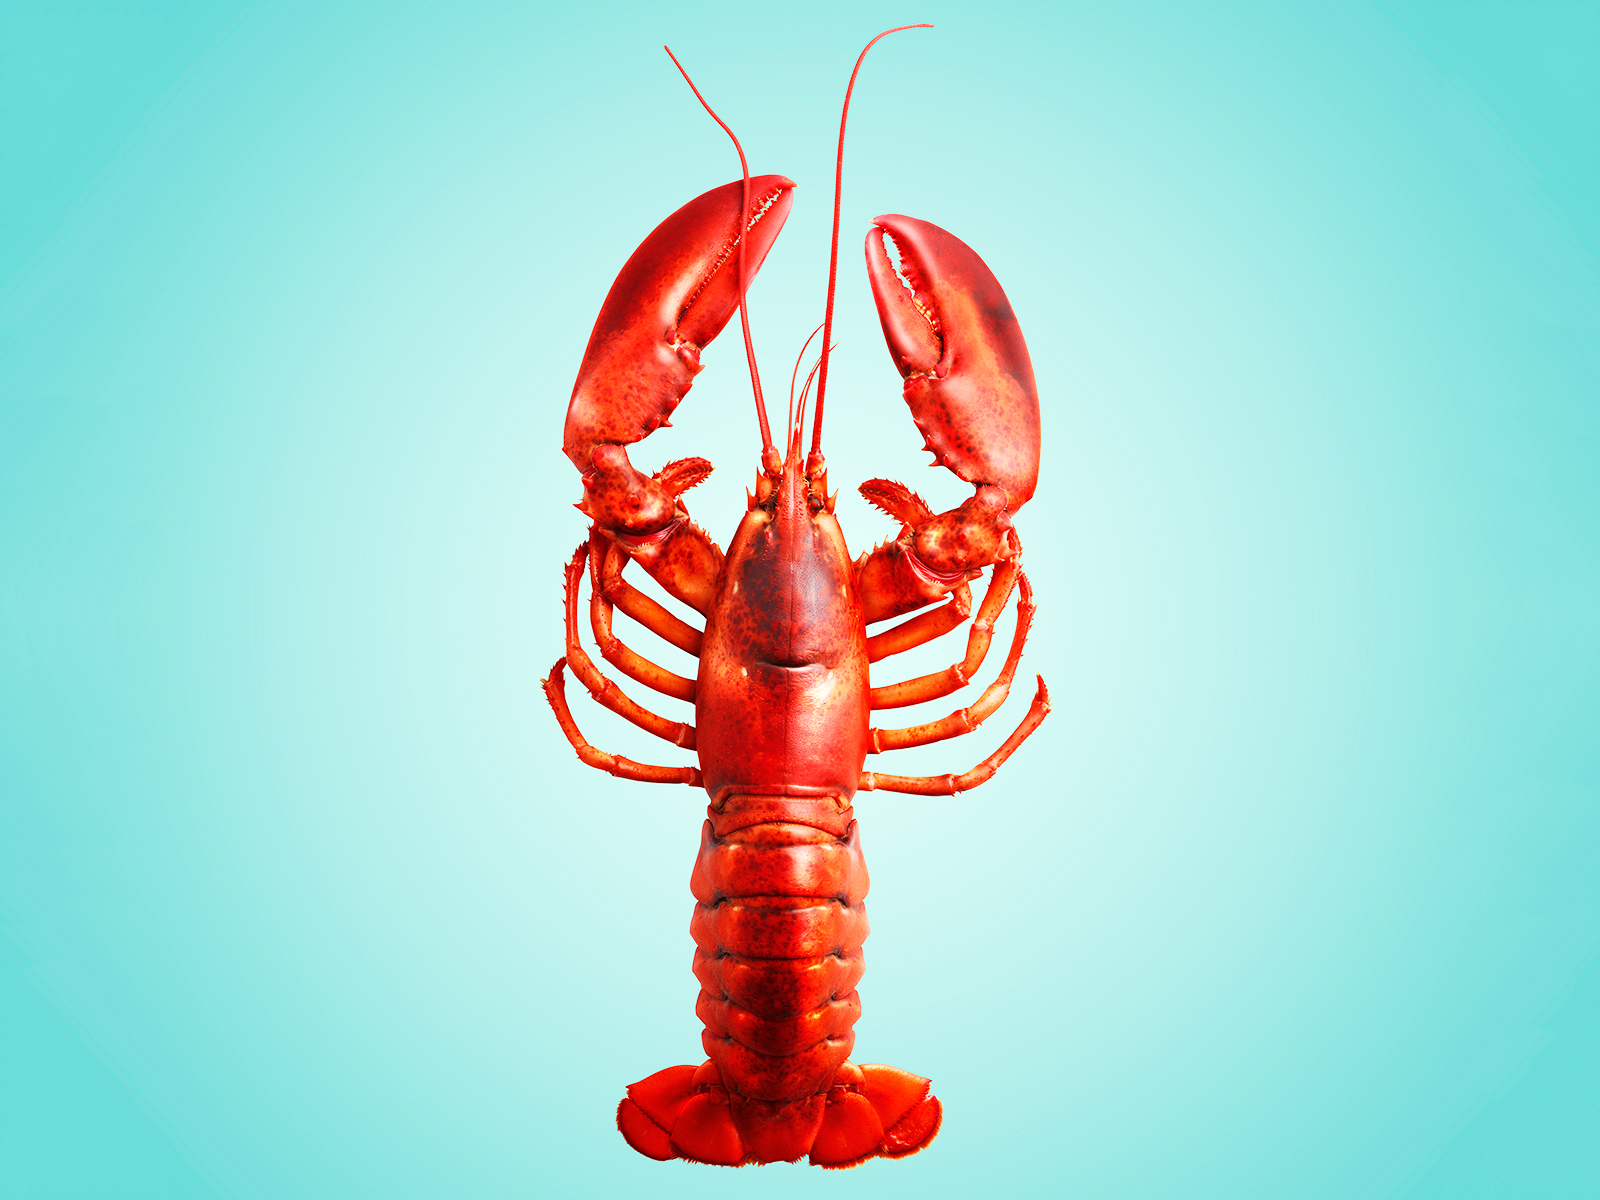 new lobster emoji